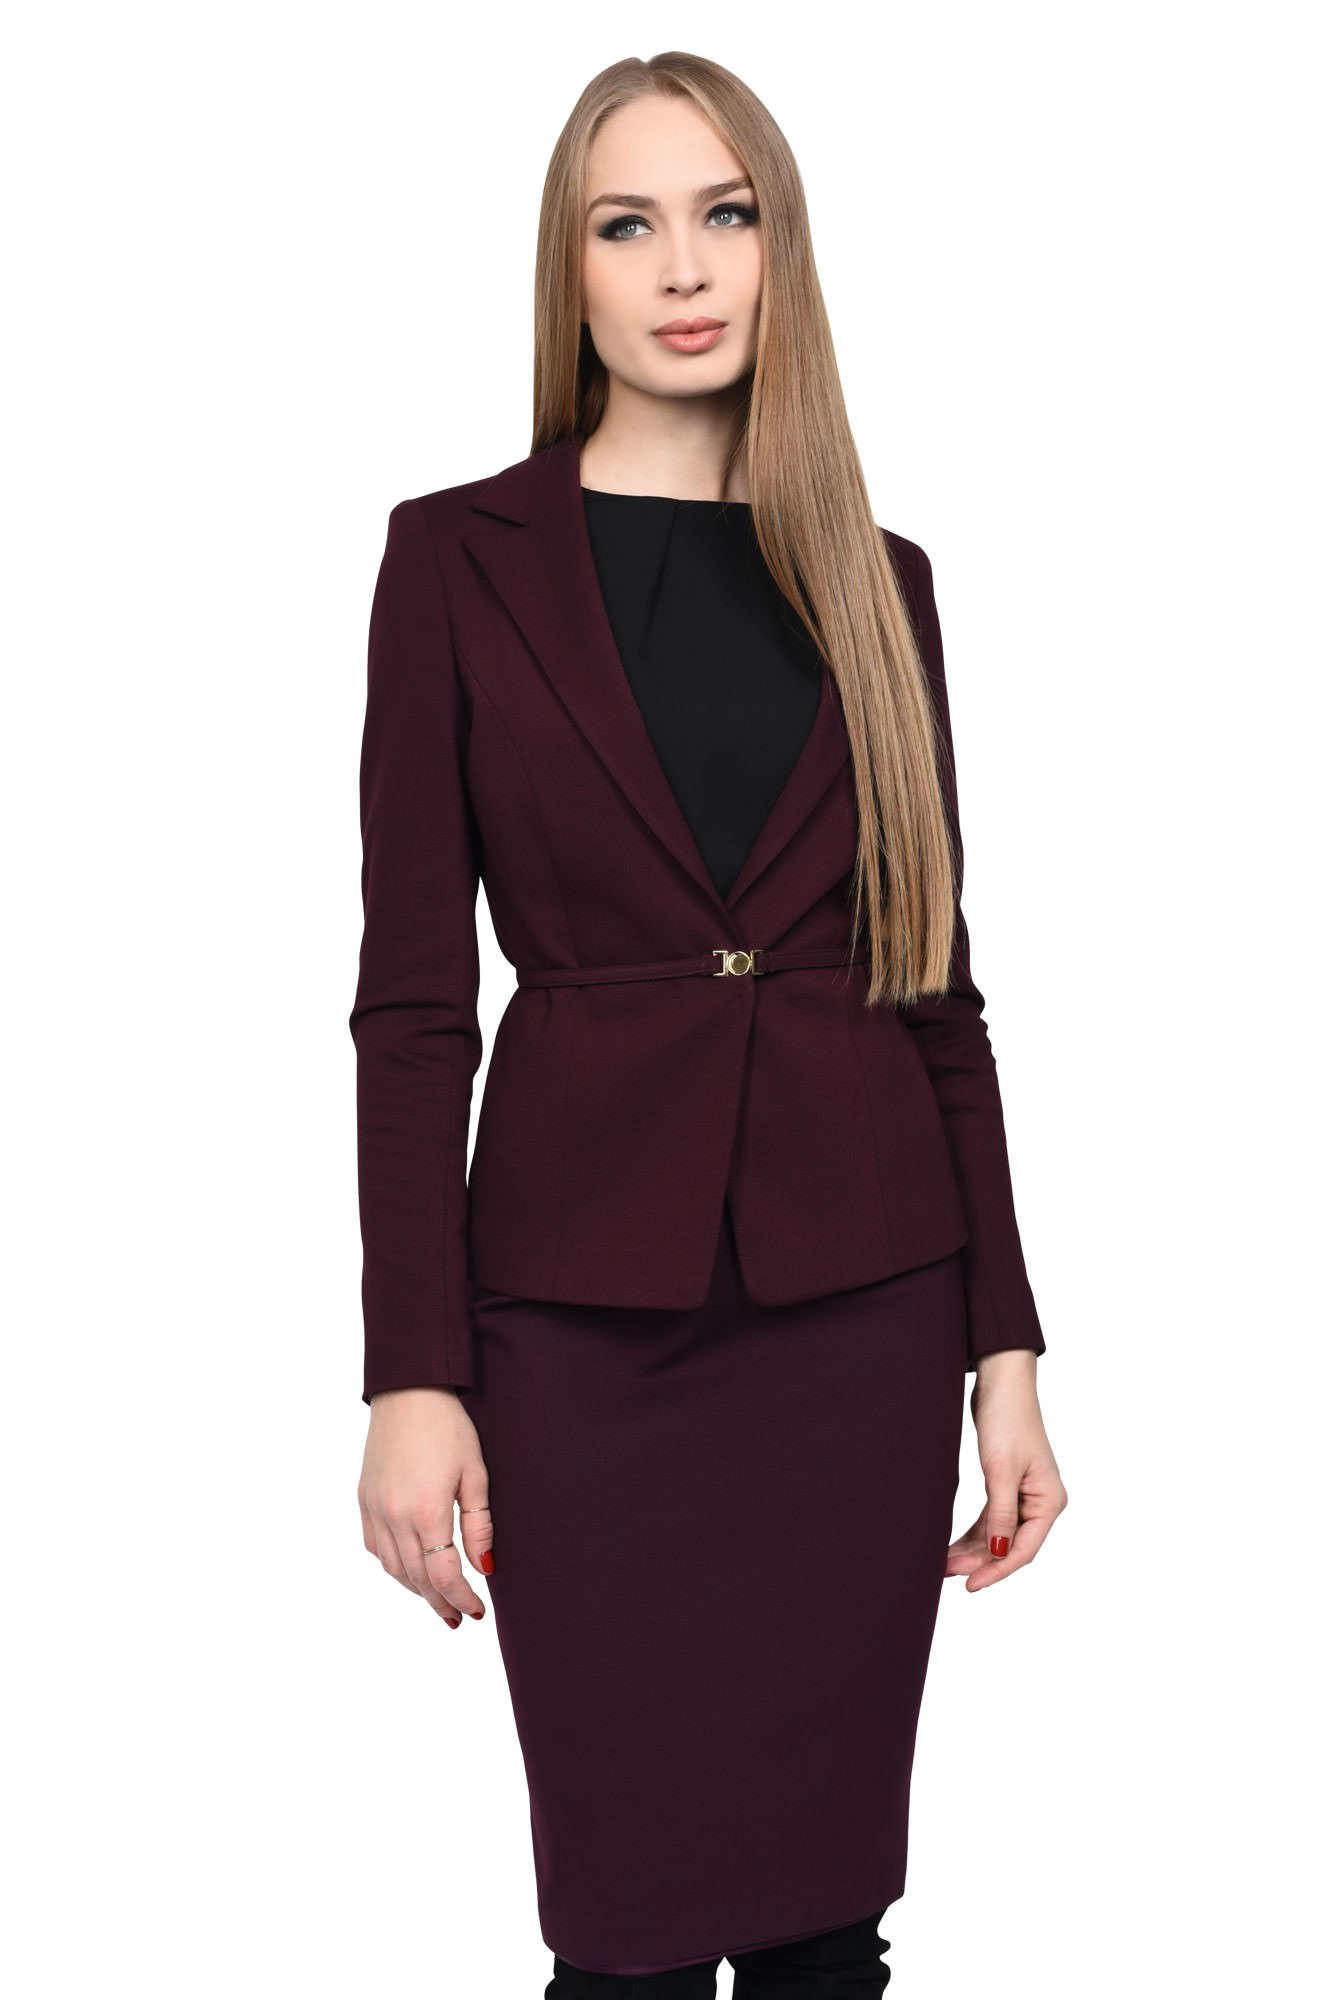 SACOU OFFICE S 109-BURGUNDY